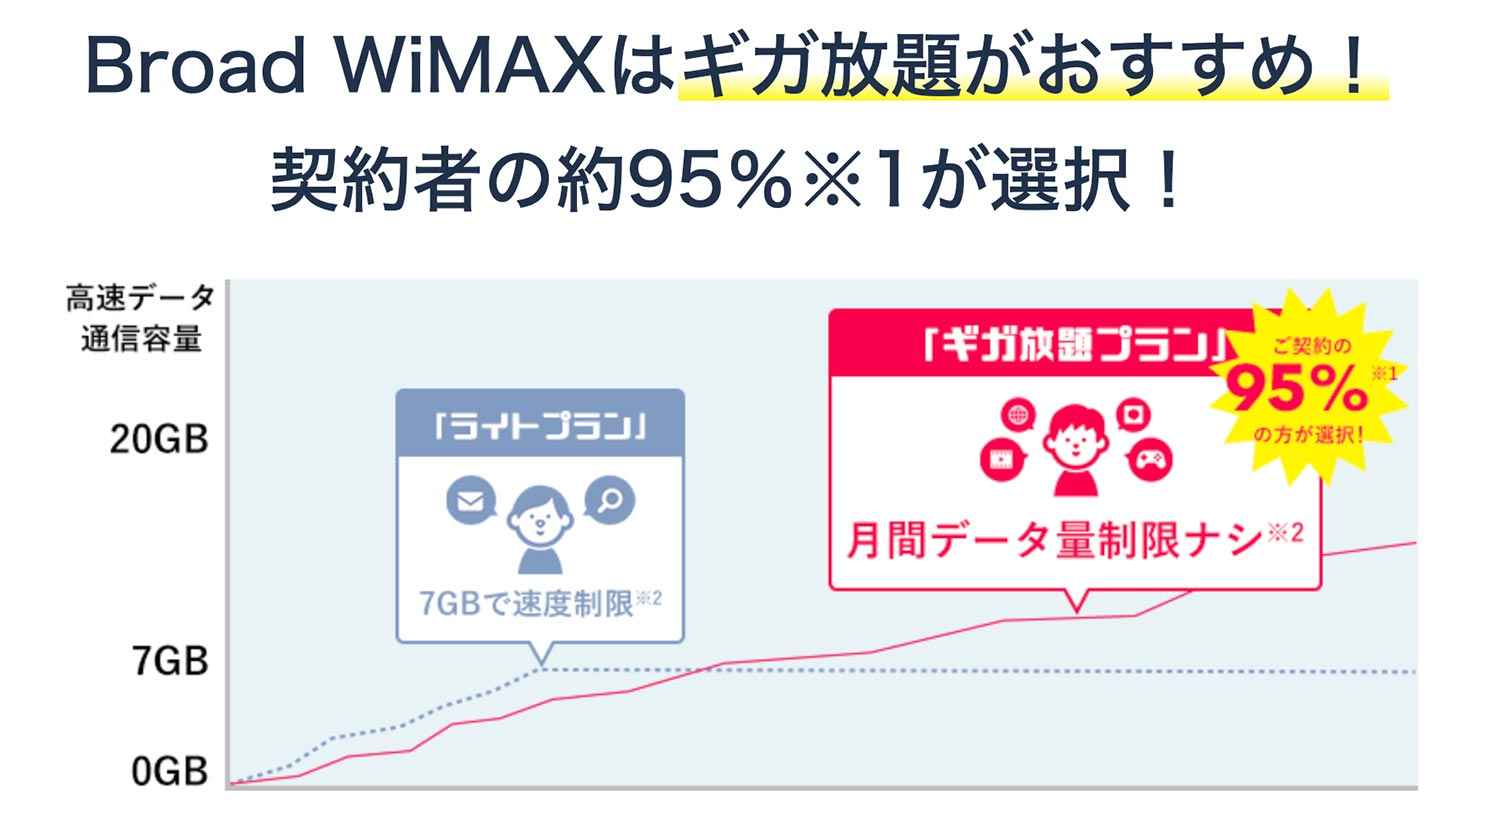 wimaxプラン